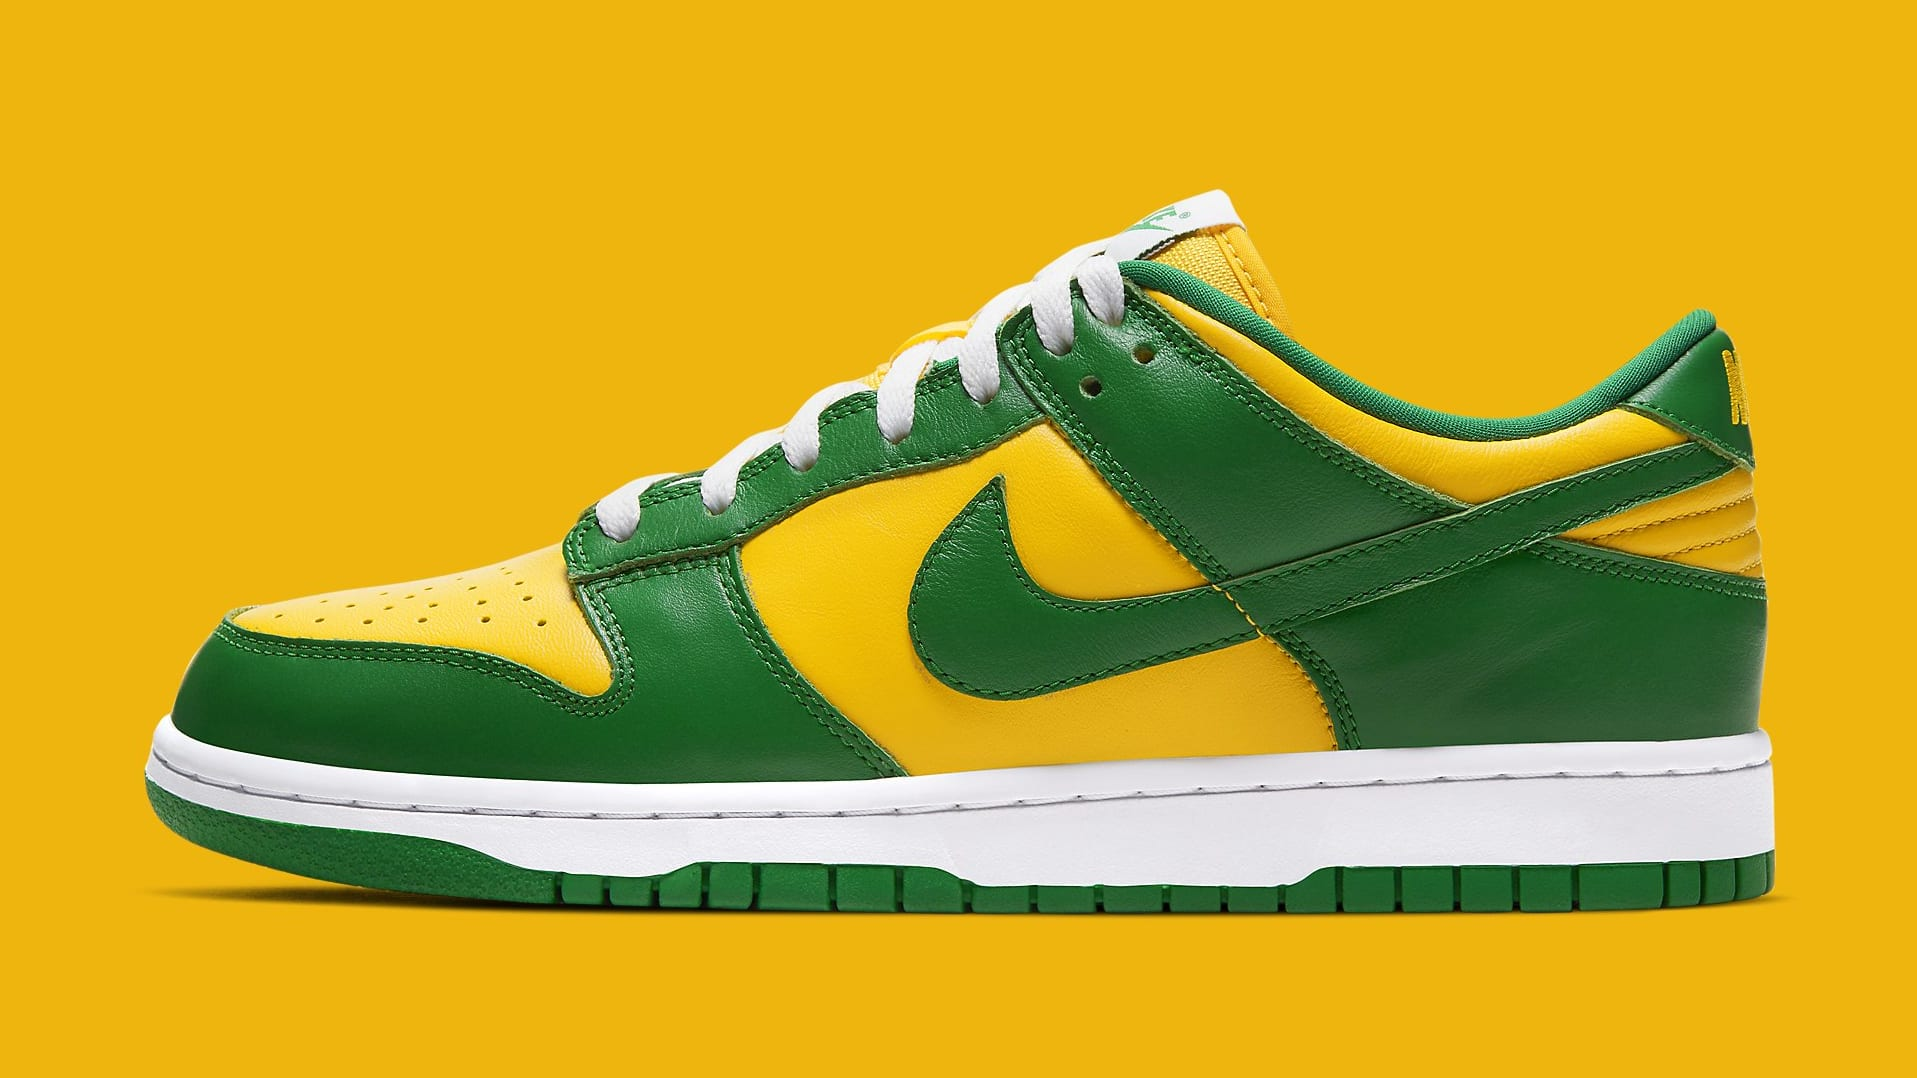 Nike Dunk Low 'Brazil' 2020 CU1727-700 Lateral